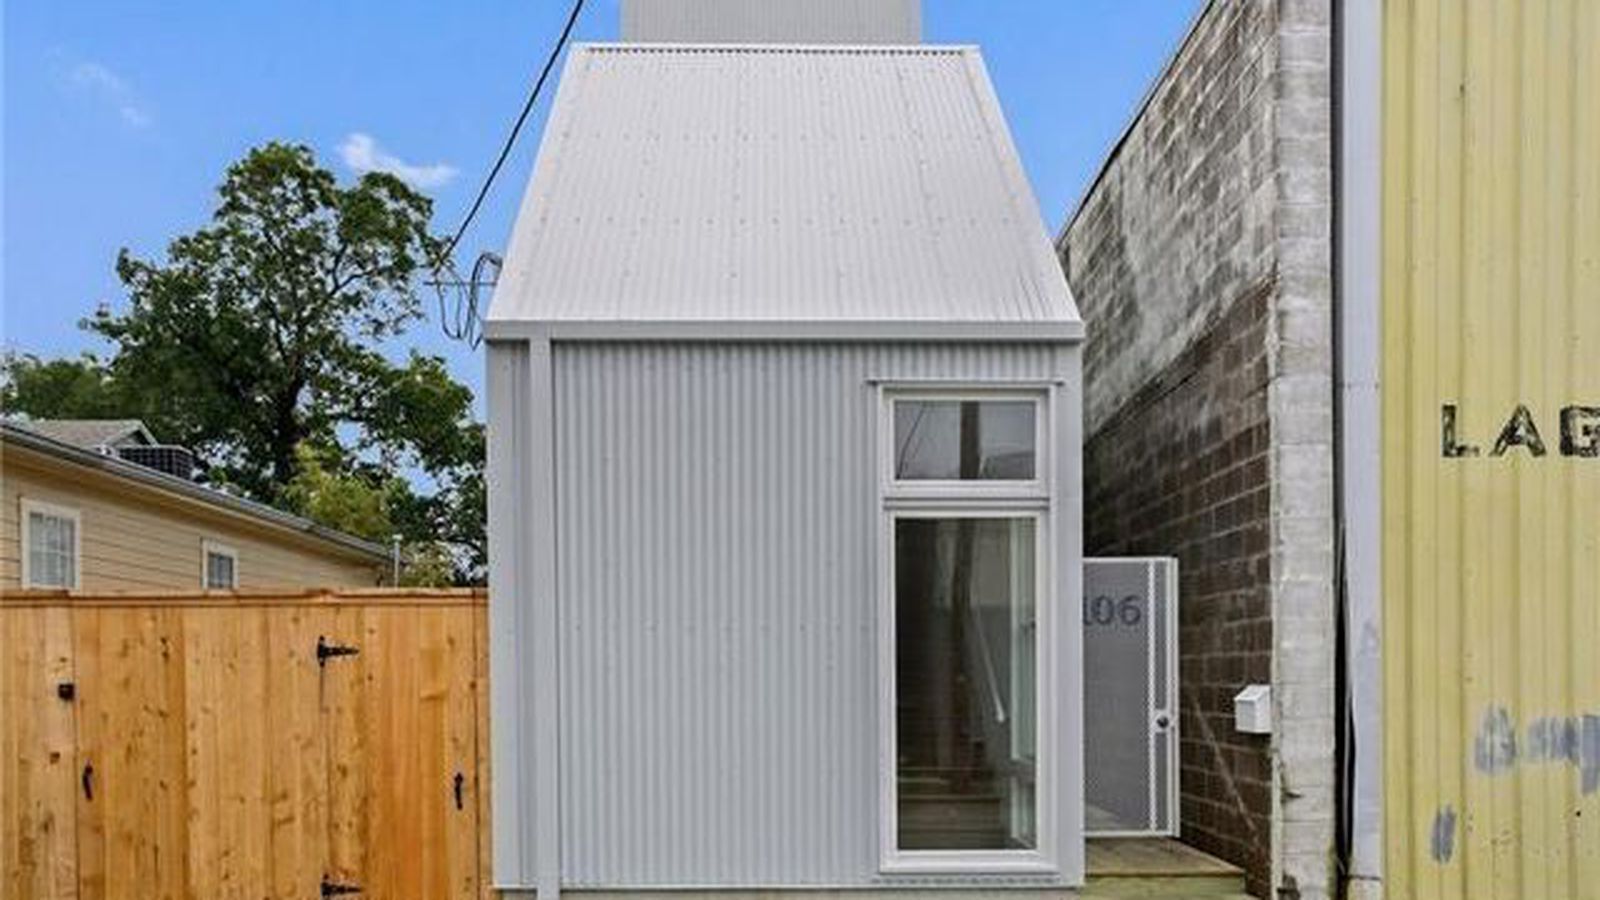 978 sq ft irish channel tiny house asks 375k curbed - 1 bedroom houses for rent in new orleans ...